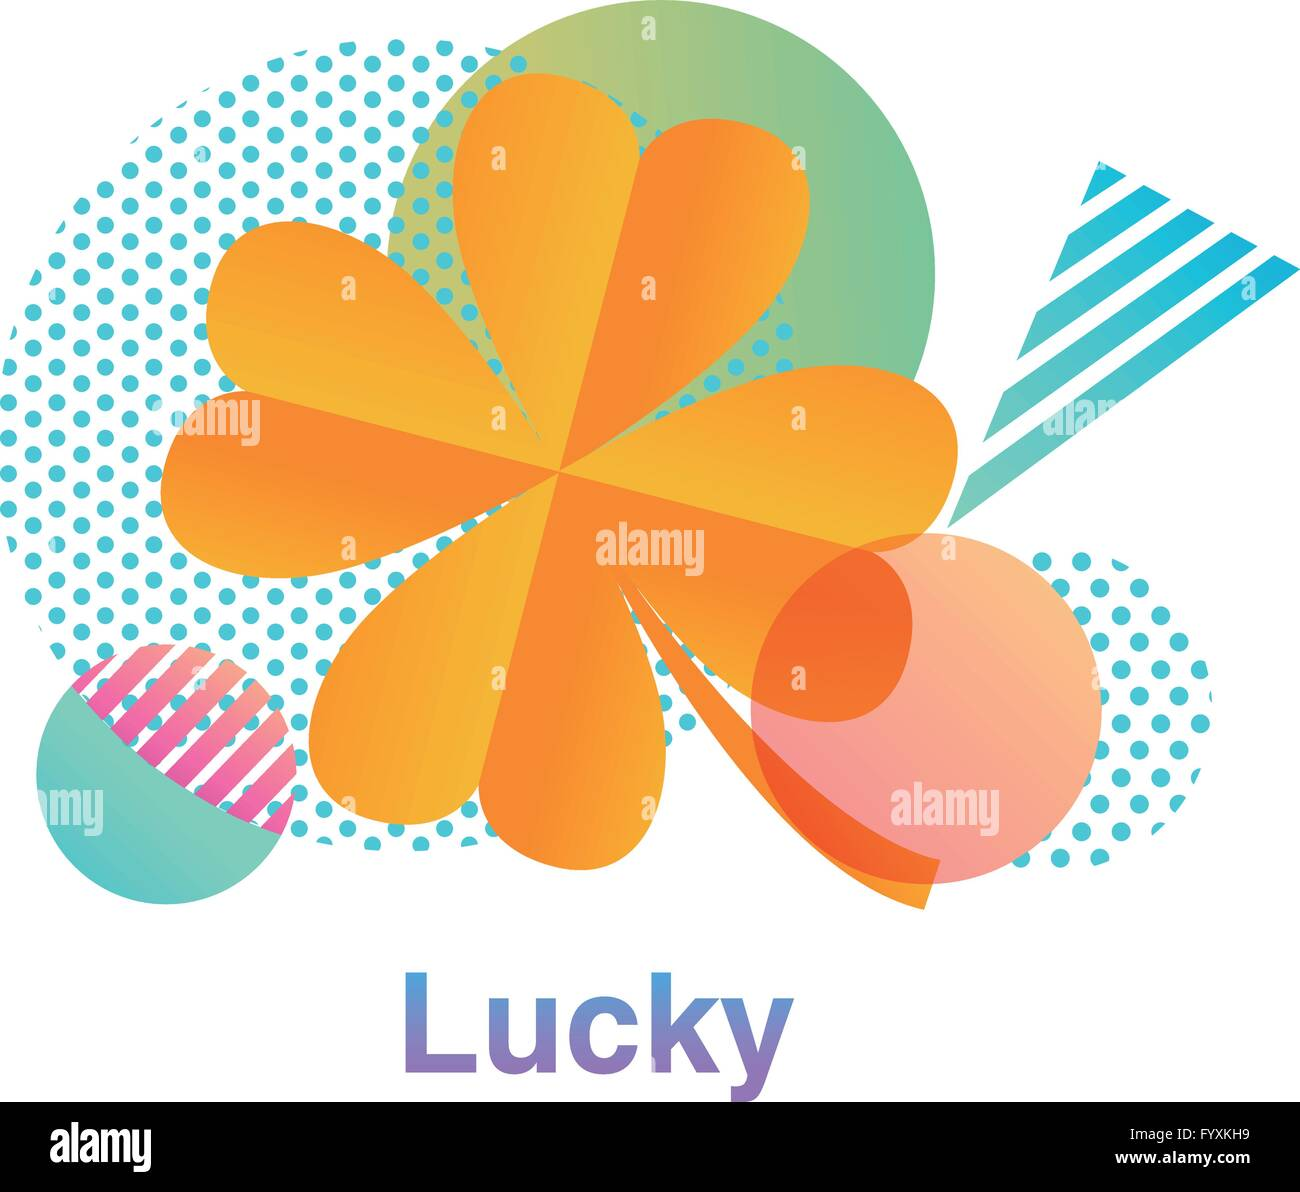 Color Icon 093 - Stock Vector